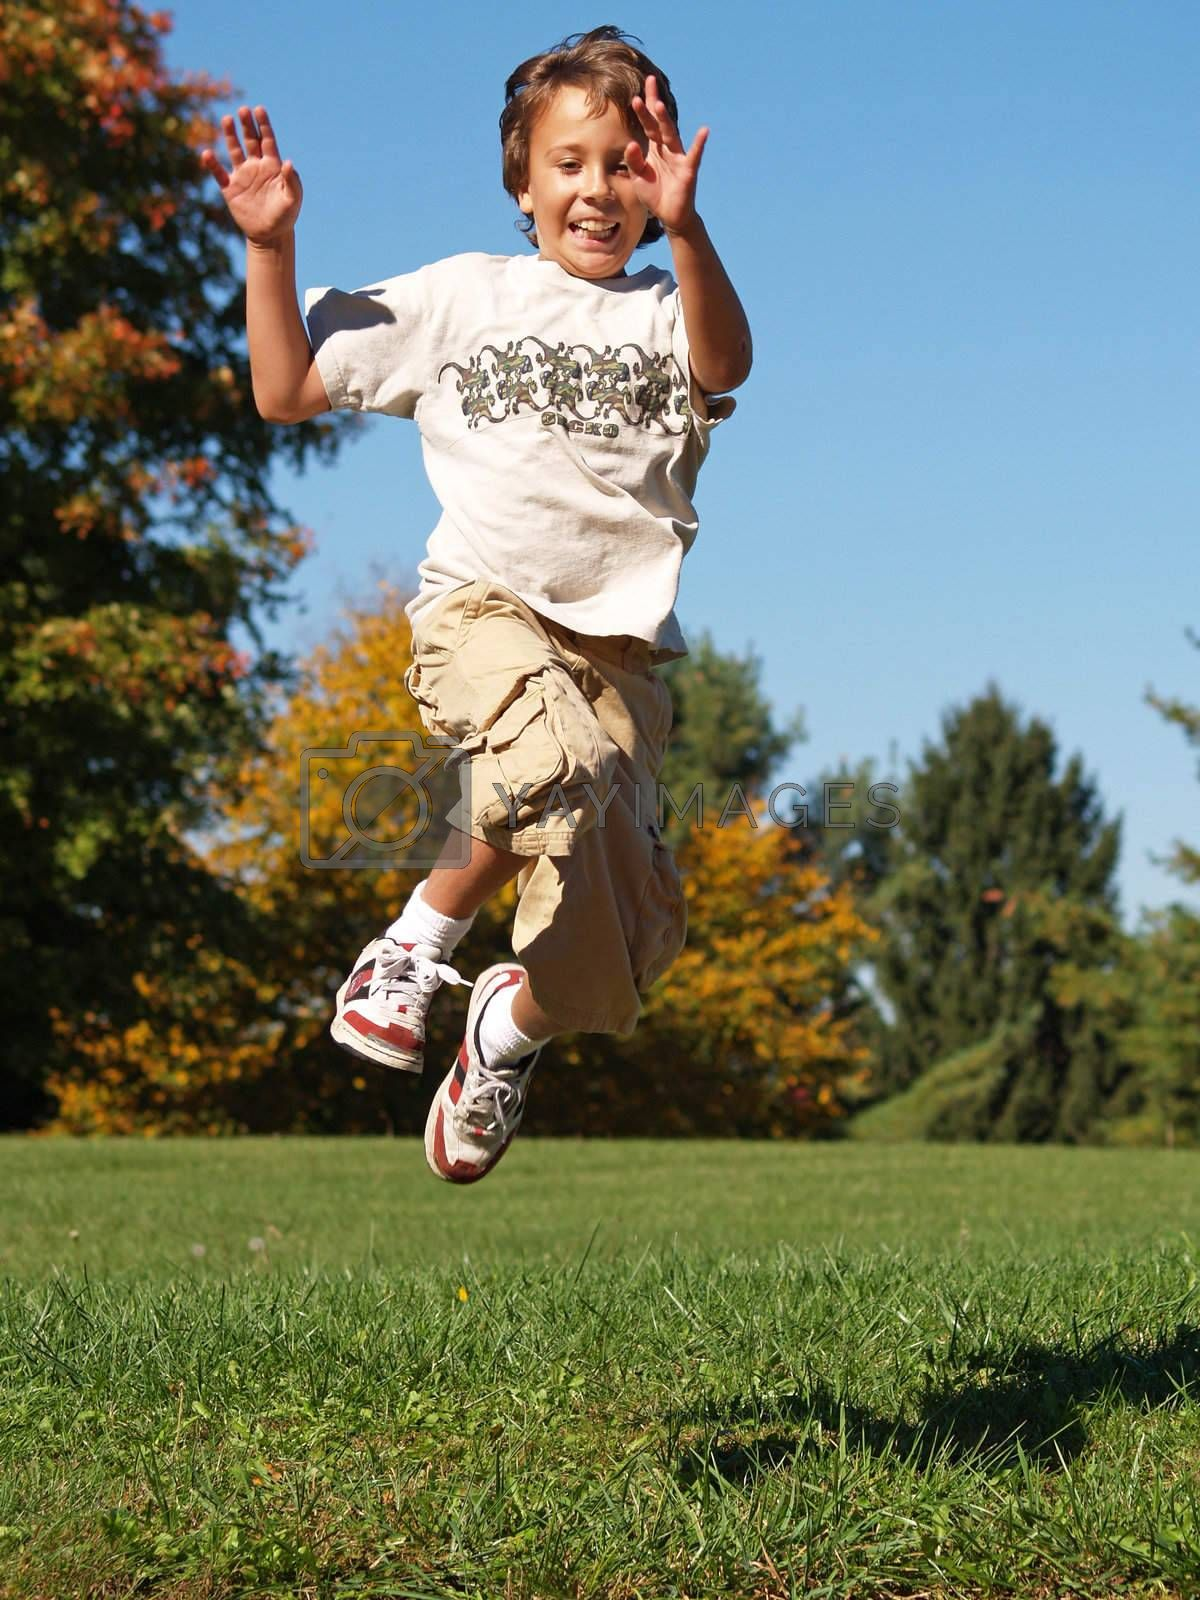 young boy jumping in the air on an autumn day